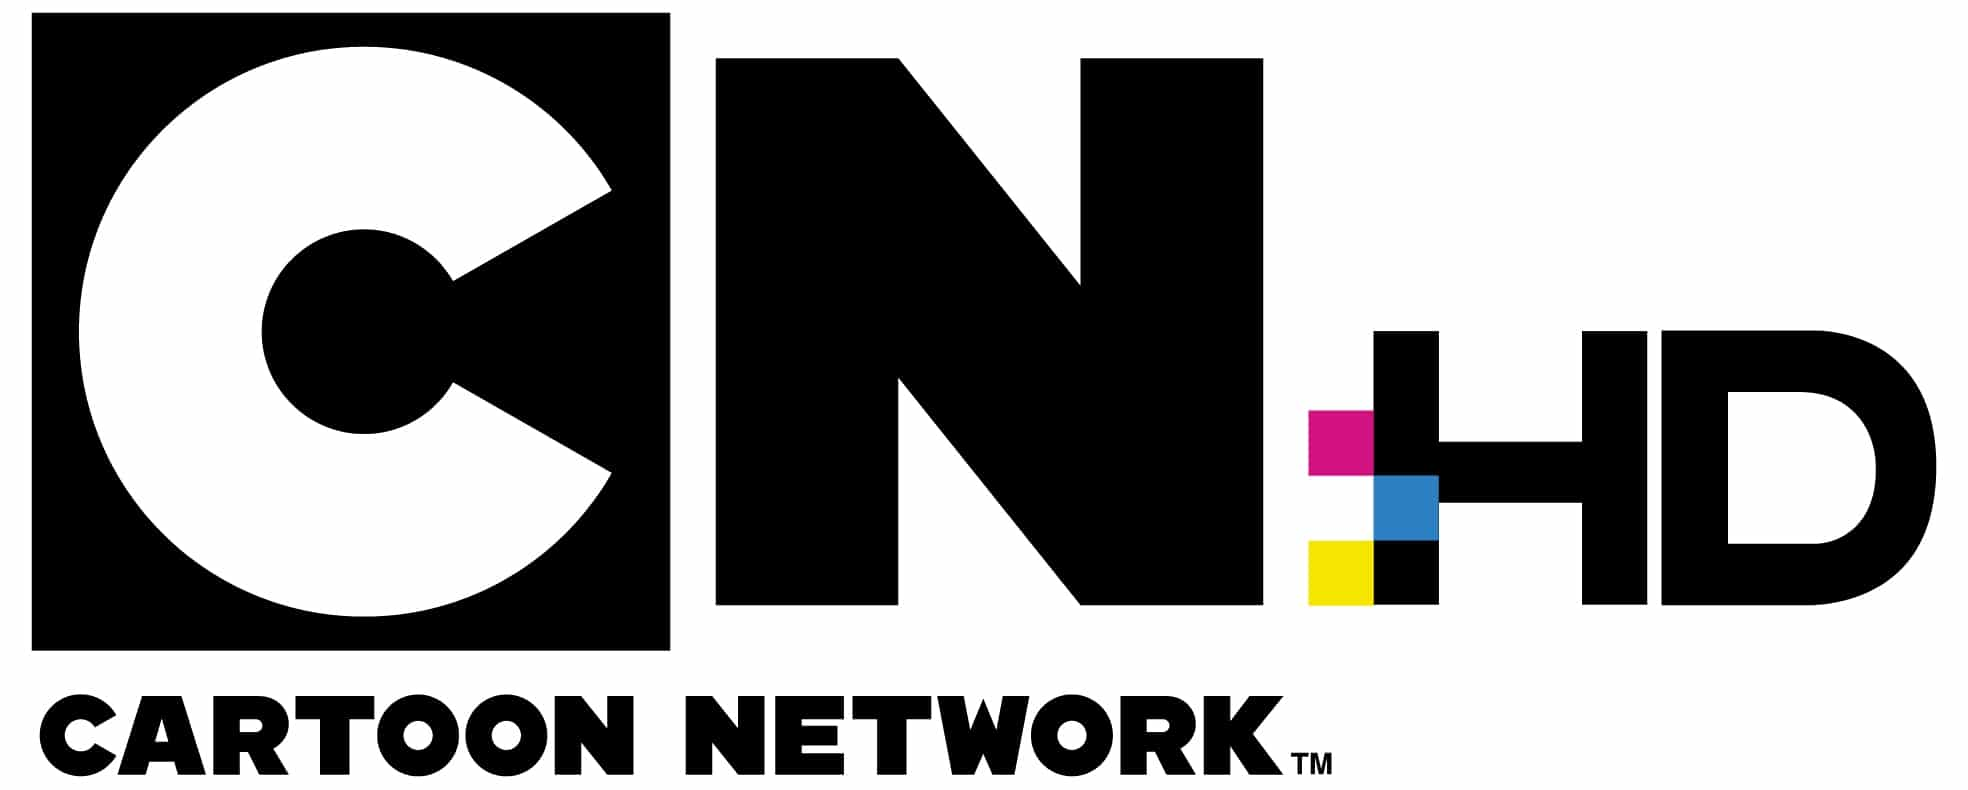 Cartoon Network HD To Launch On VTR Cable Service In Chile Tomorrow